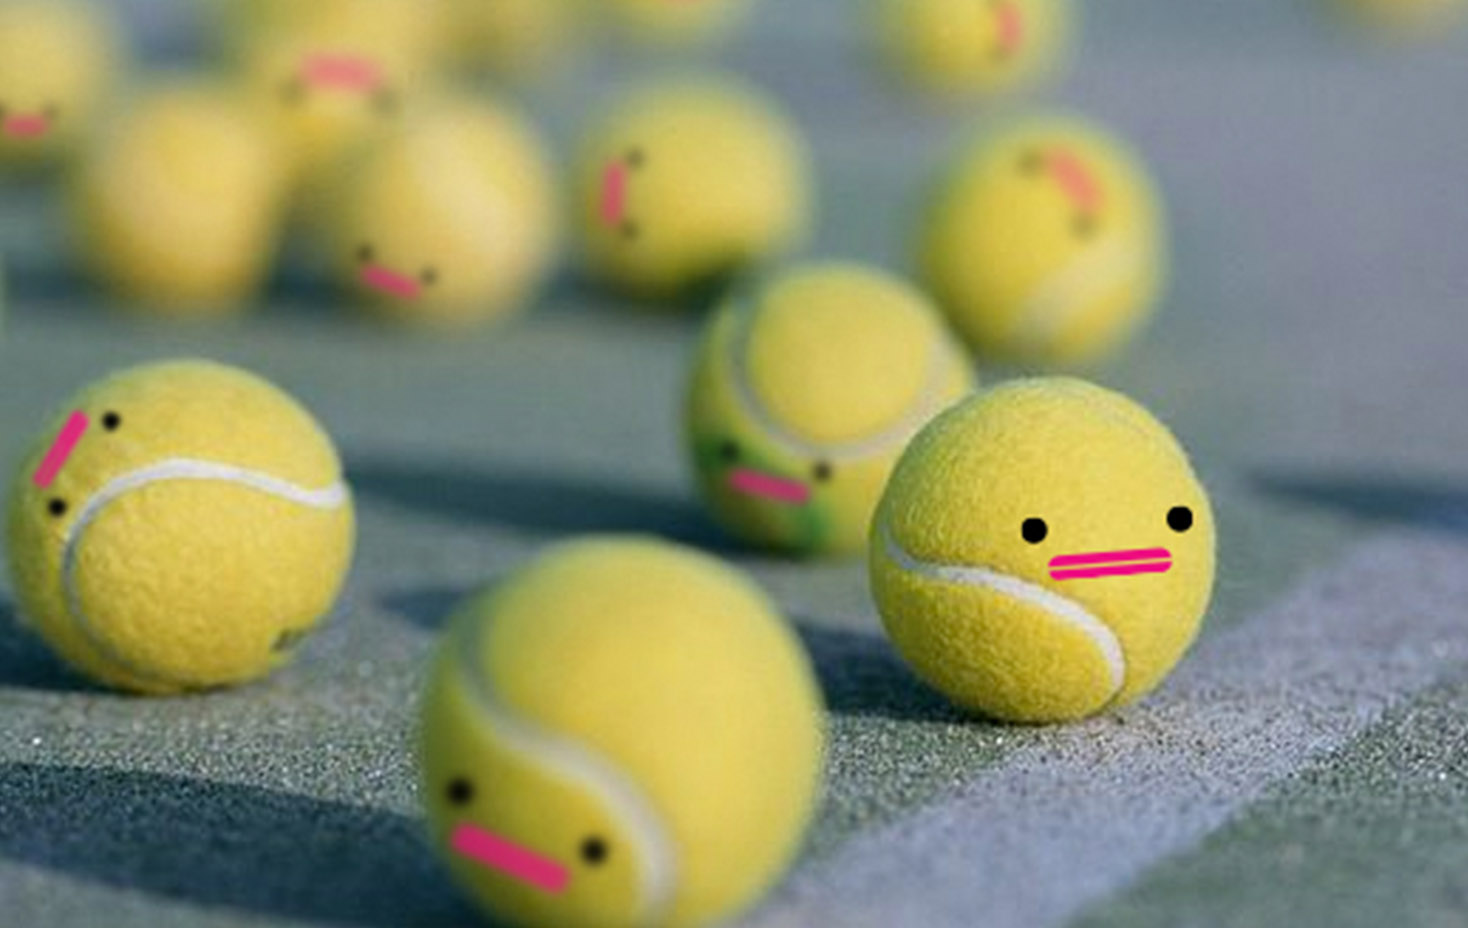 Capsubeans Instagram VR Image - Cartoon Character Licensing Kids - Cute tennis balls with bean face - Rikki Mobile